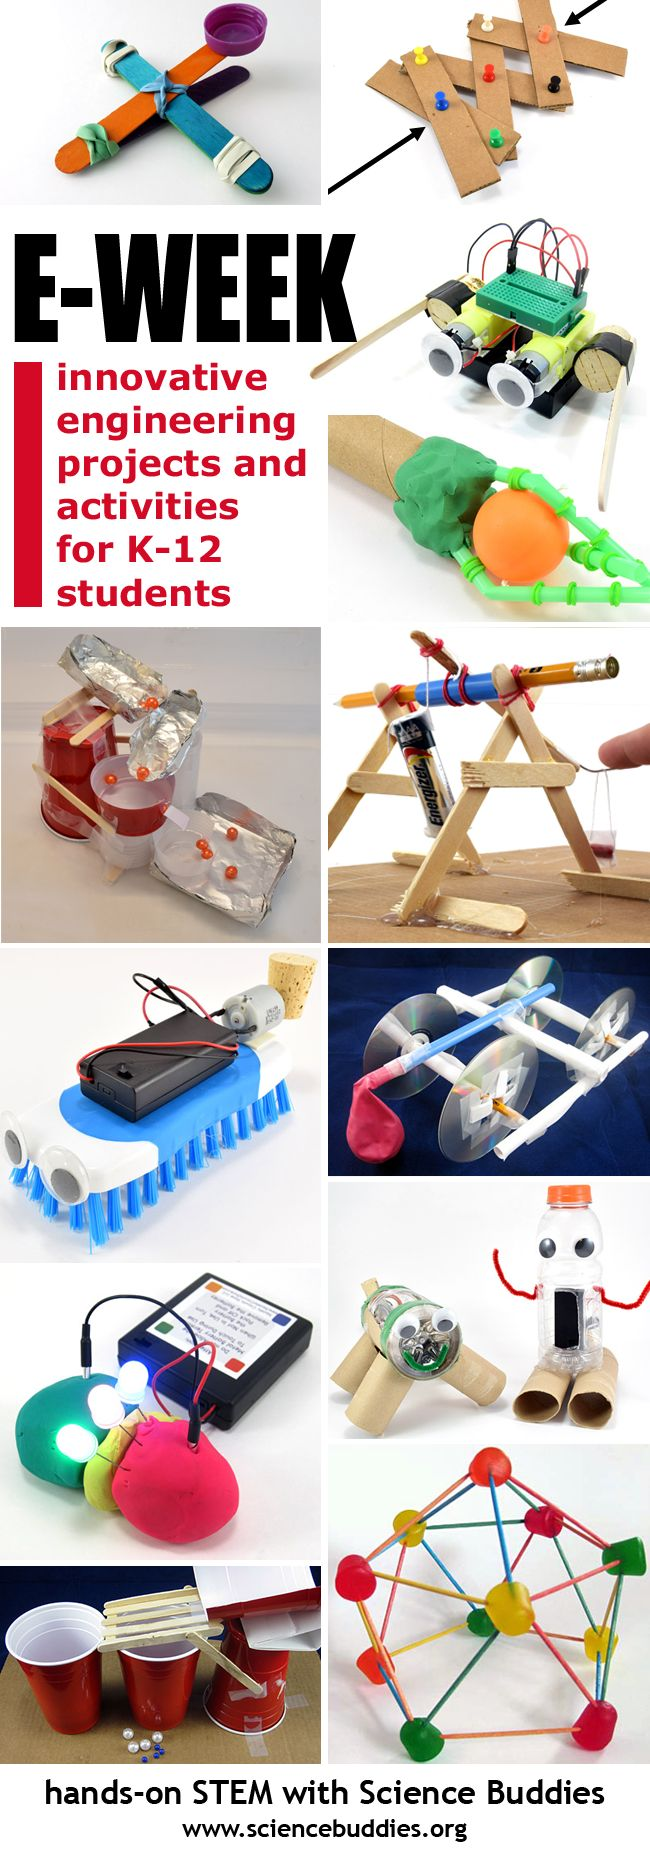 Celebrate Engineers Week! Science Buddies has great projects and activities for K-12 students. [Science Buddies, http://www.sciencebuddies.org/blog/2017/02/great-ideas-for-engineers-week-1.php?from=Pinterest] #FluorChallenge #Eweek2017 #eweek #engineering #scienceed #scienceproject